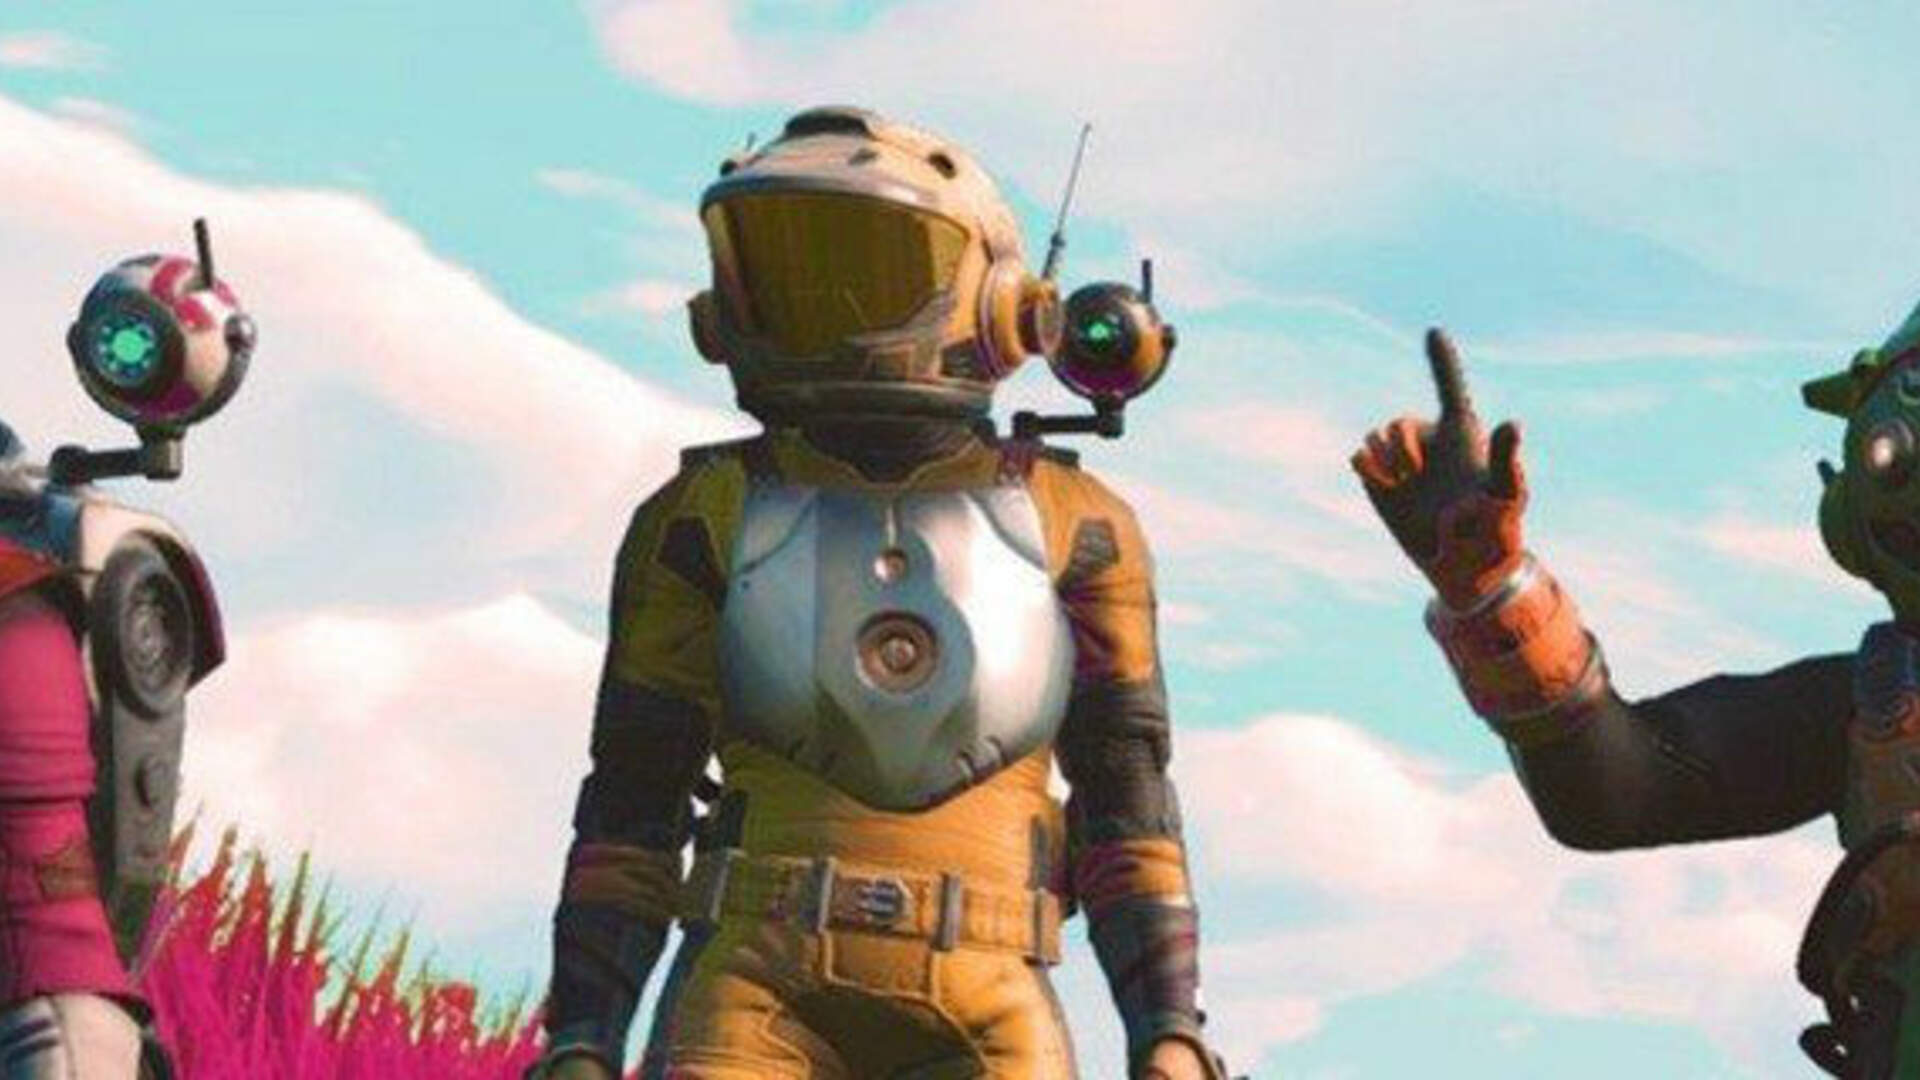 How to Fix No Man's Sky Base Computer Archives Bug